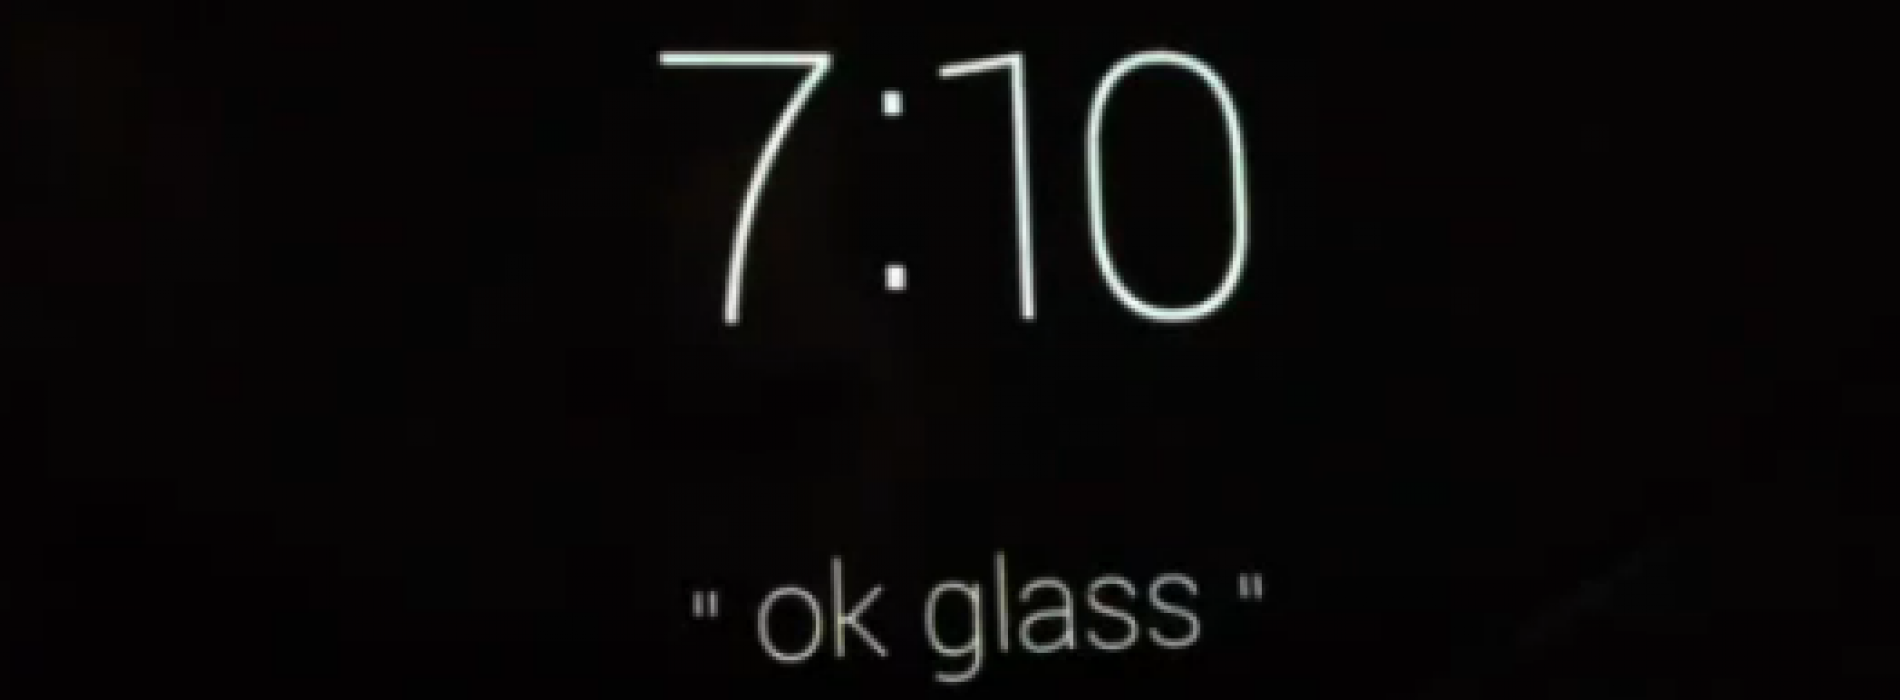 Want to see what the Google Glass menus look like? [video]